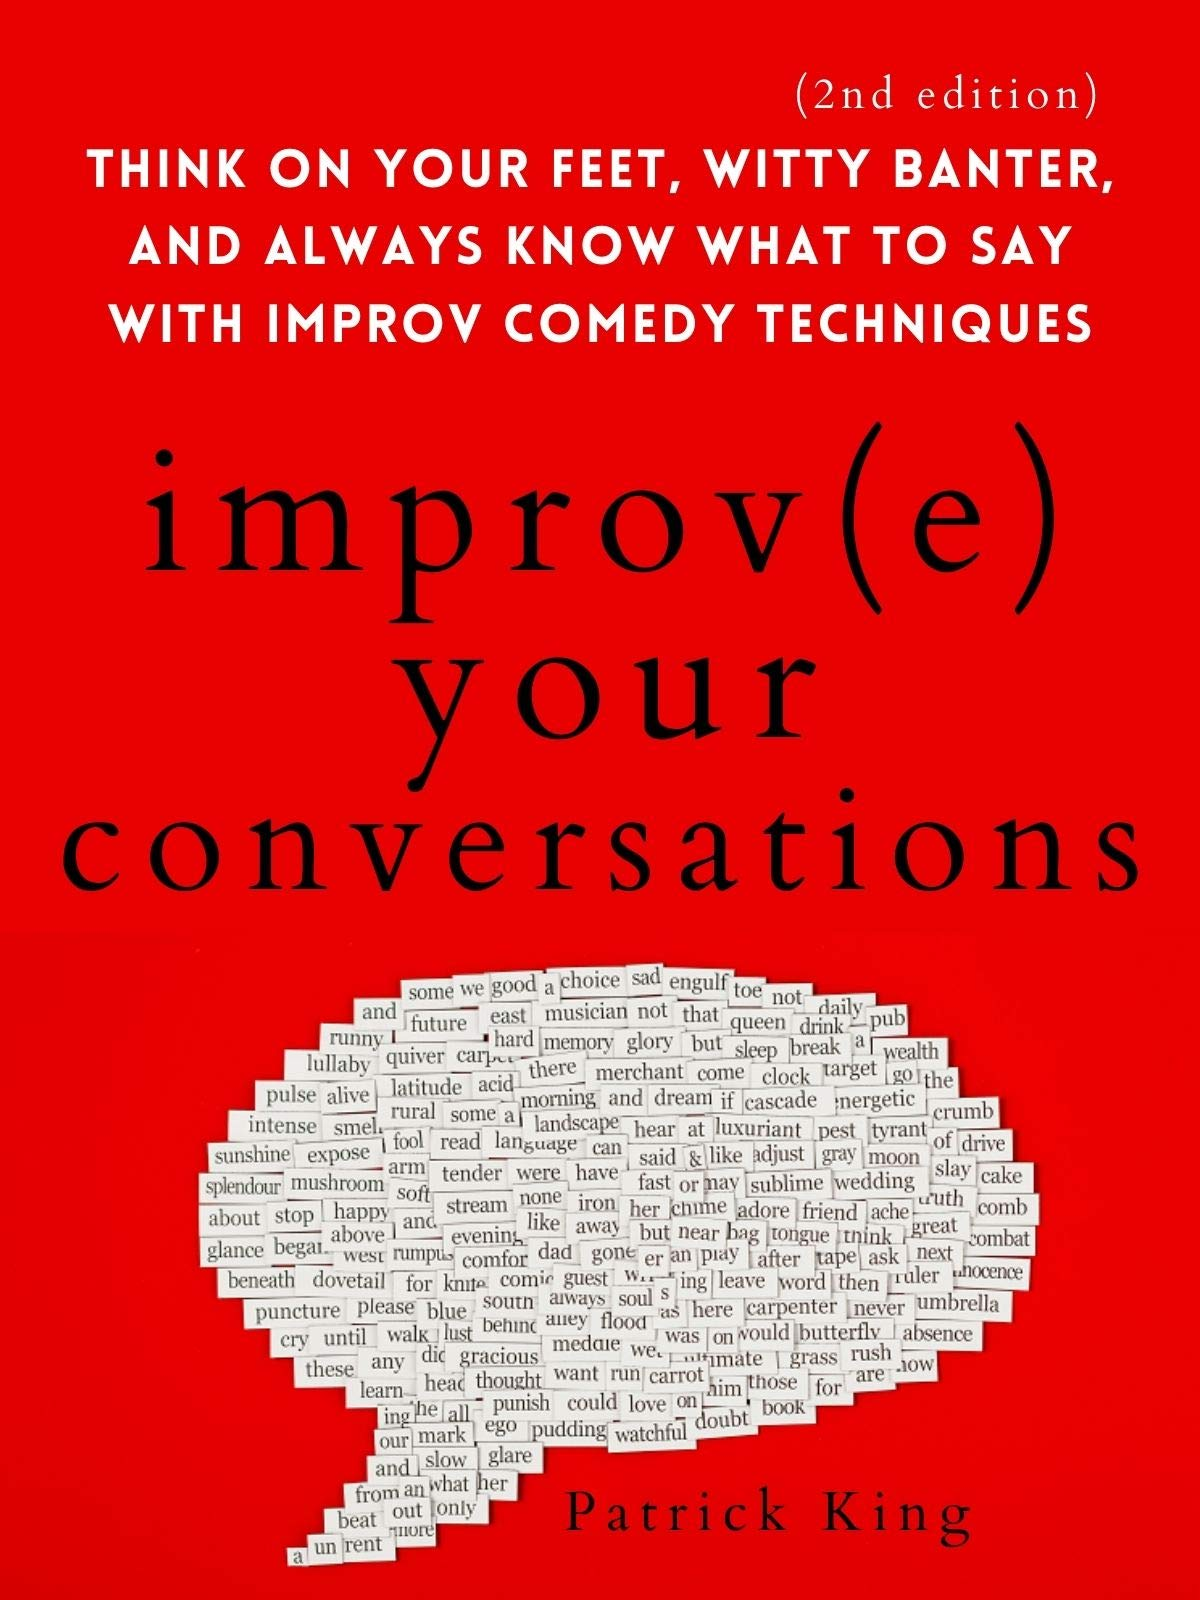 Improve Your Conversations: Think on Your Feet, Witty Banter, and Always Know What to Say with Improv Comedy Techniques (2nd Edition) (How to be More Likable and Charismatic Book 10)